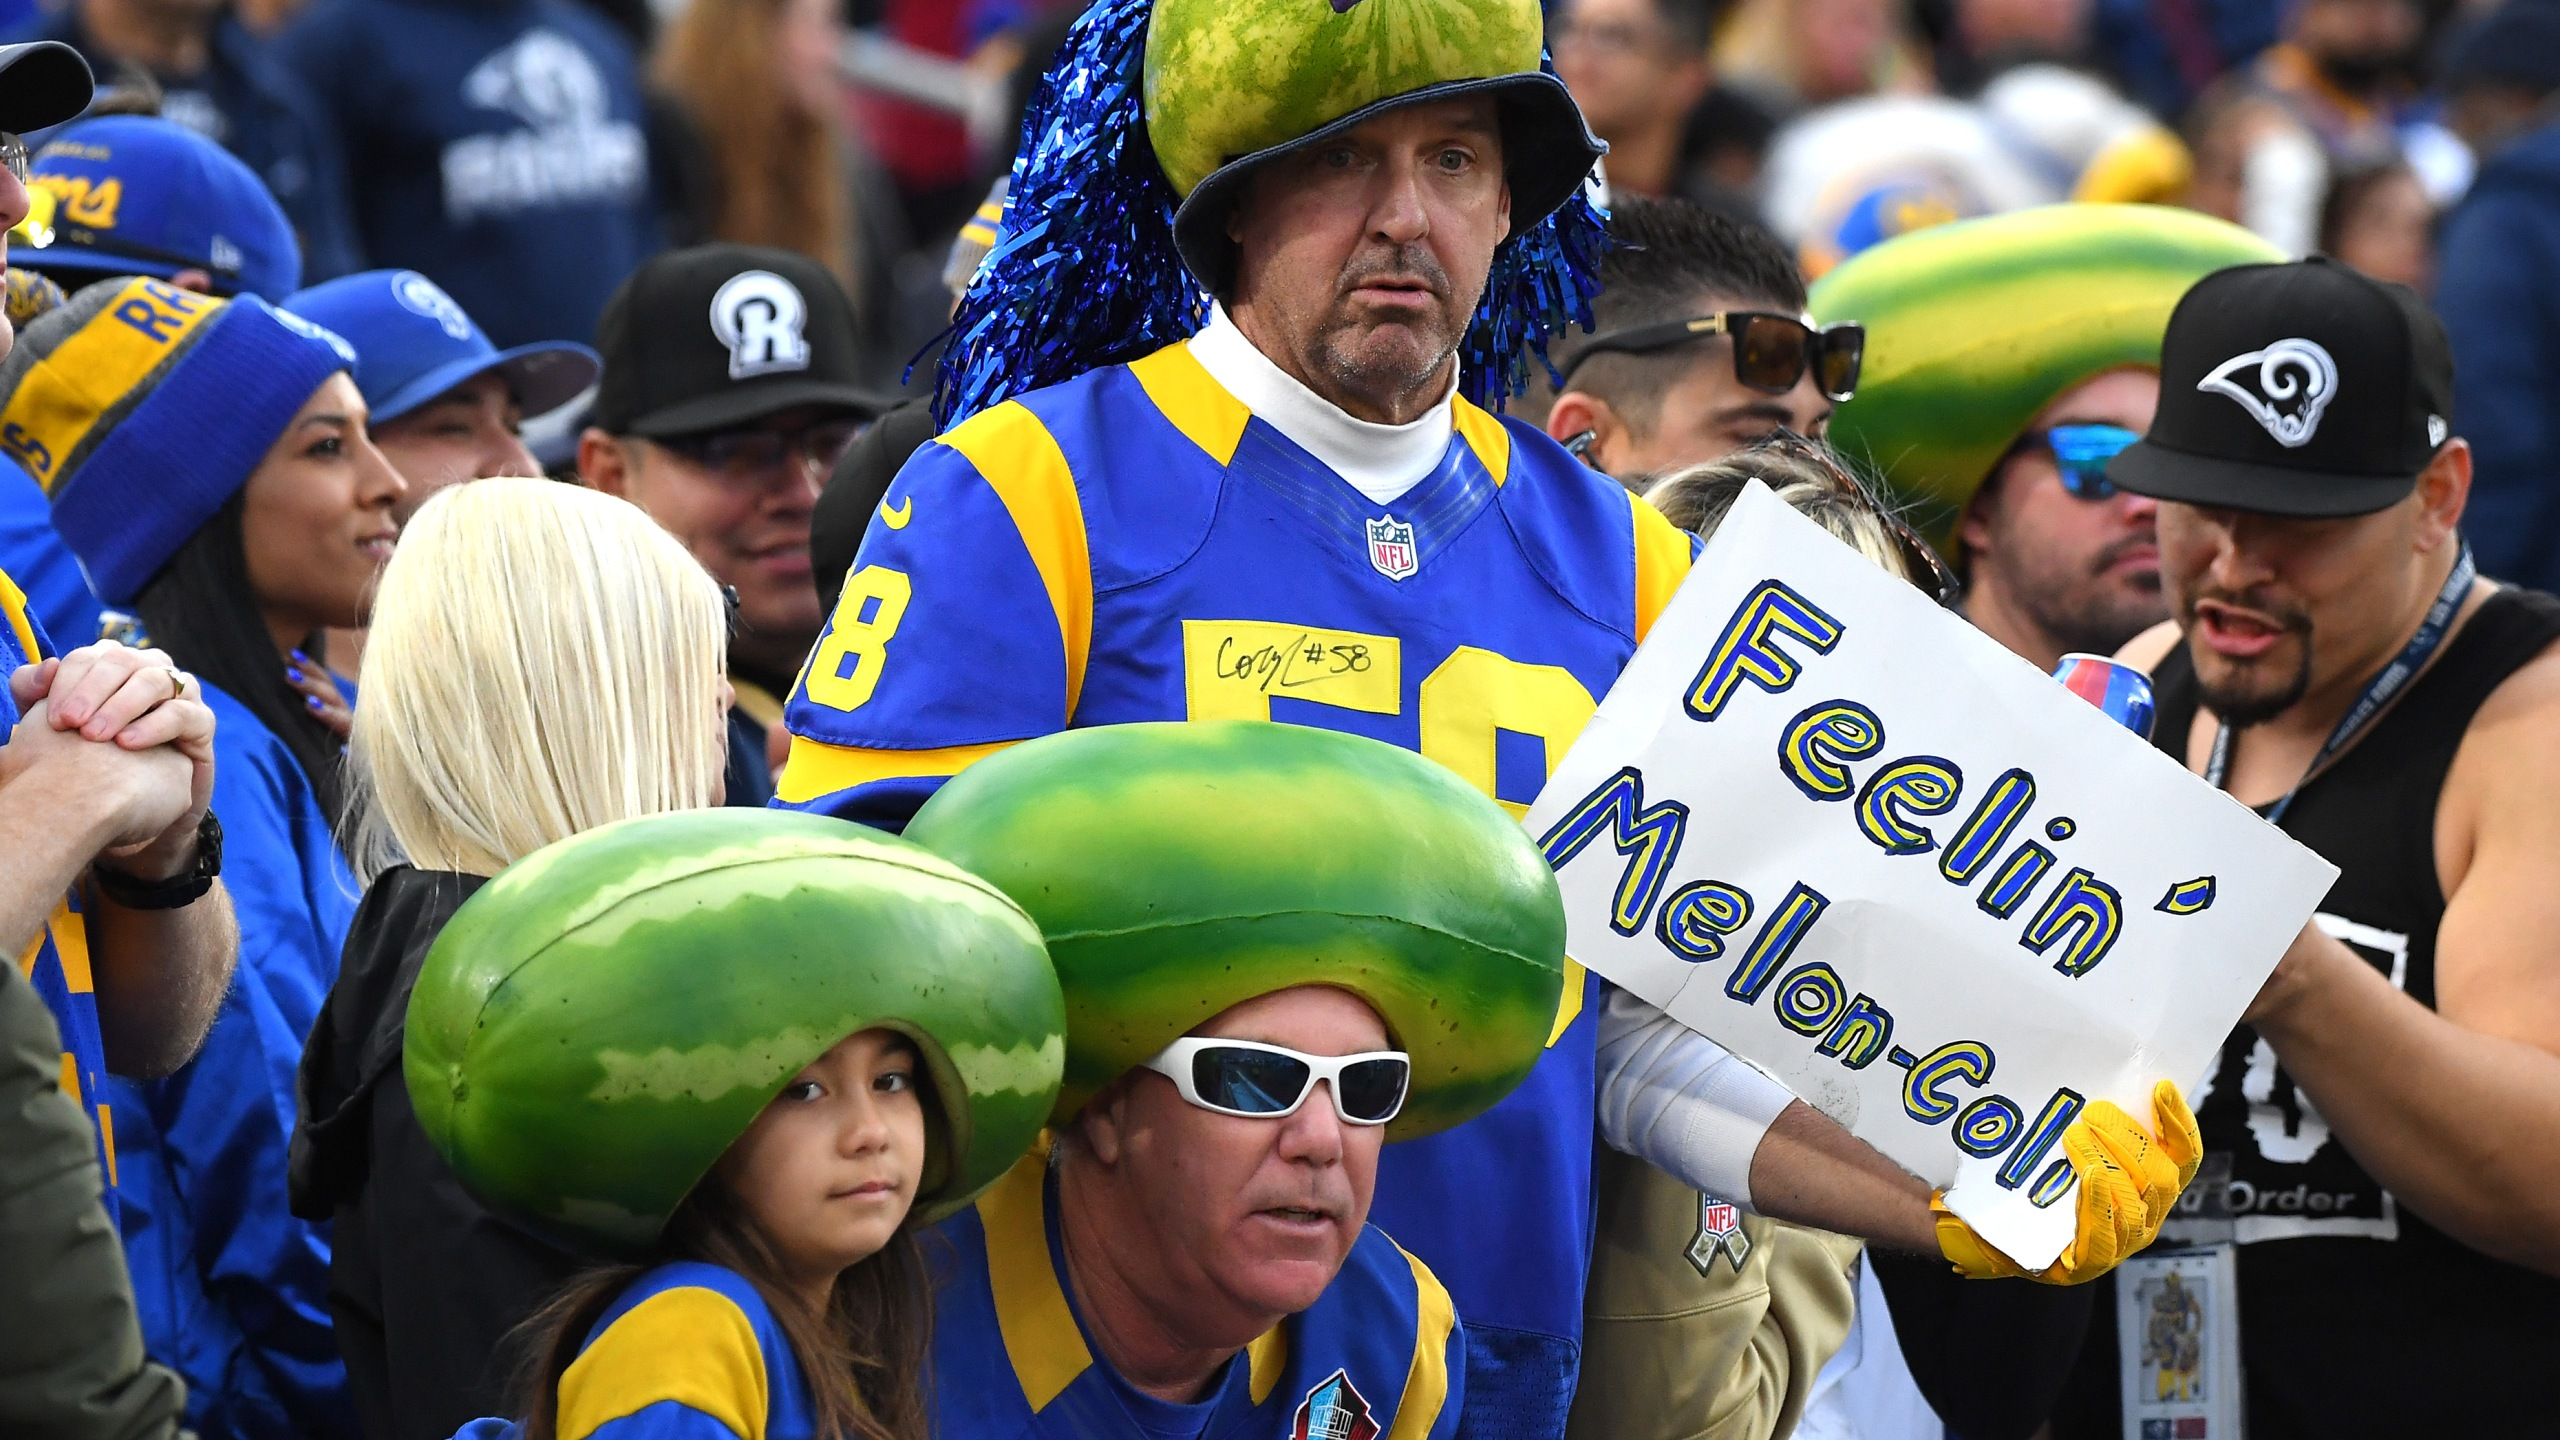 Los Angeles Rams fans attend the game against the Arizona Cardinals at the Memorial Coliseum on Dec. 29, 2019. (Credit: Jayne Kamin-Oncea / Getty Images)